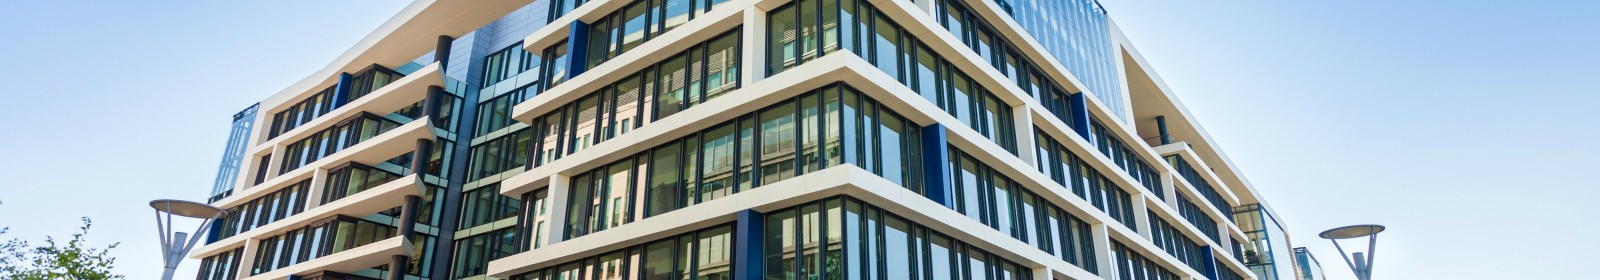 Commercial property booming in Cape Town's CBD